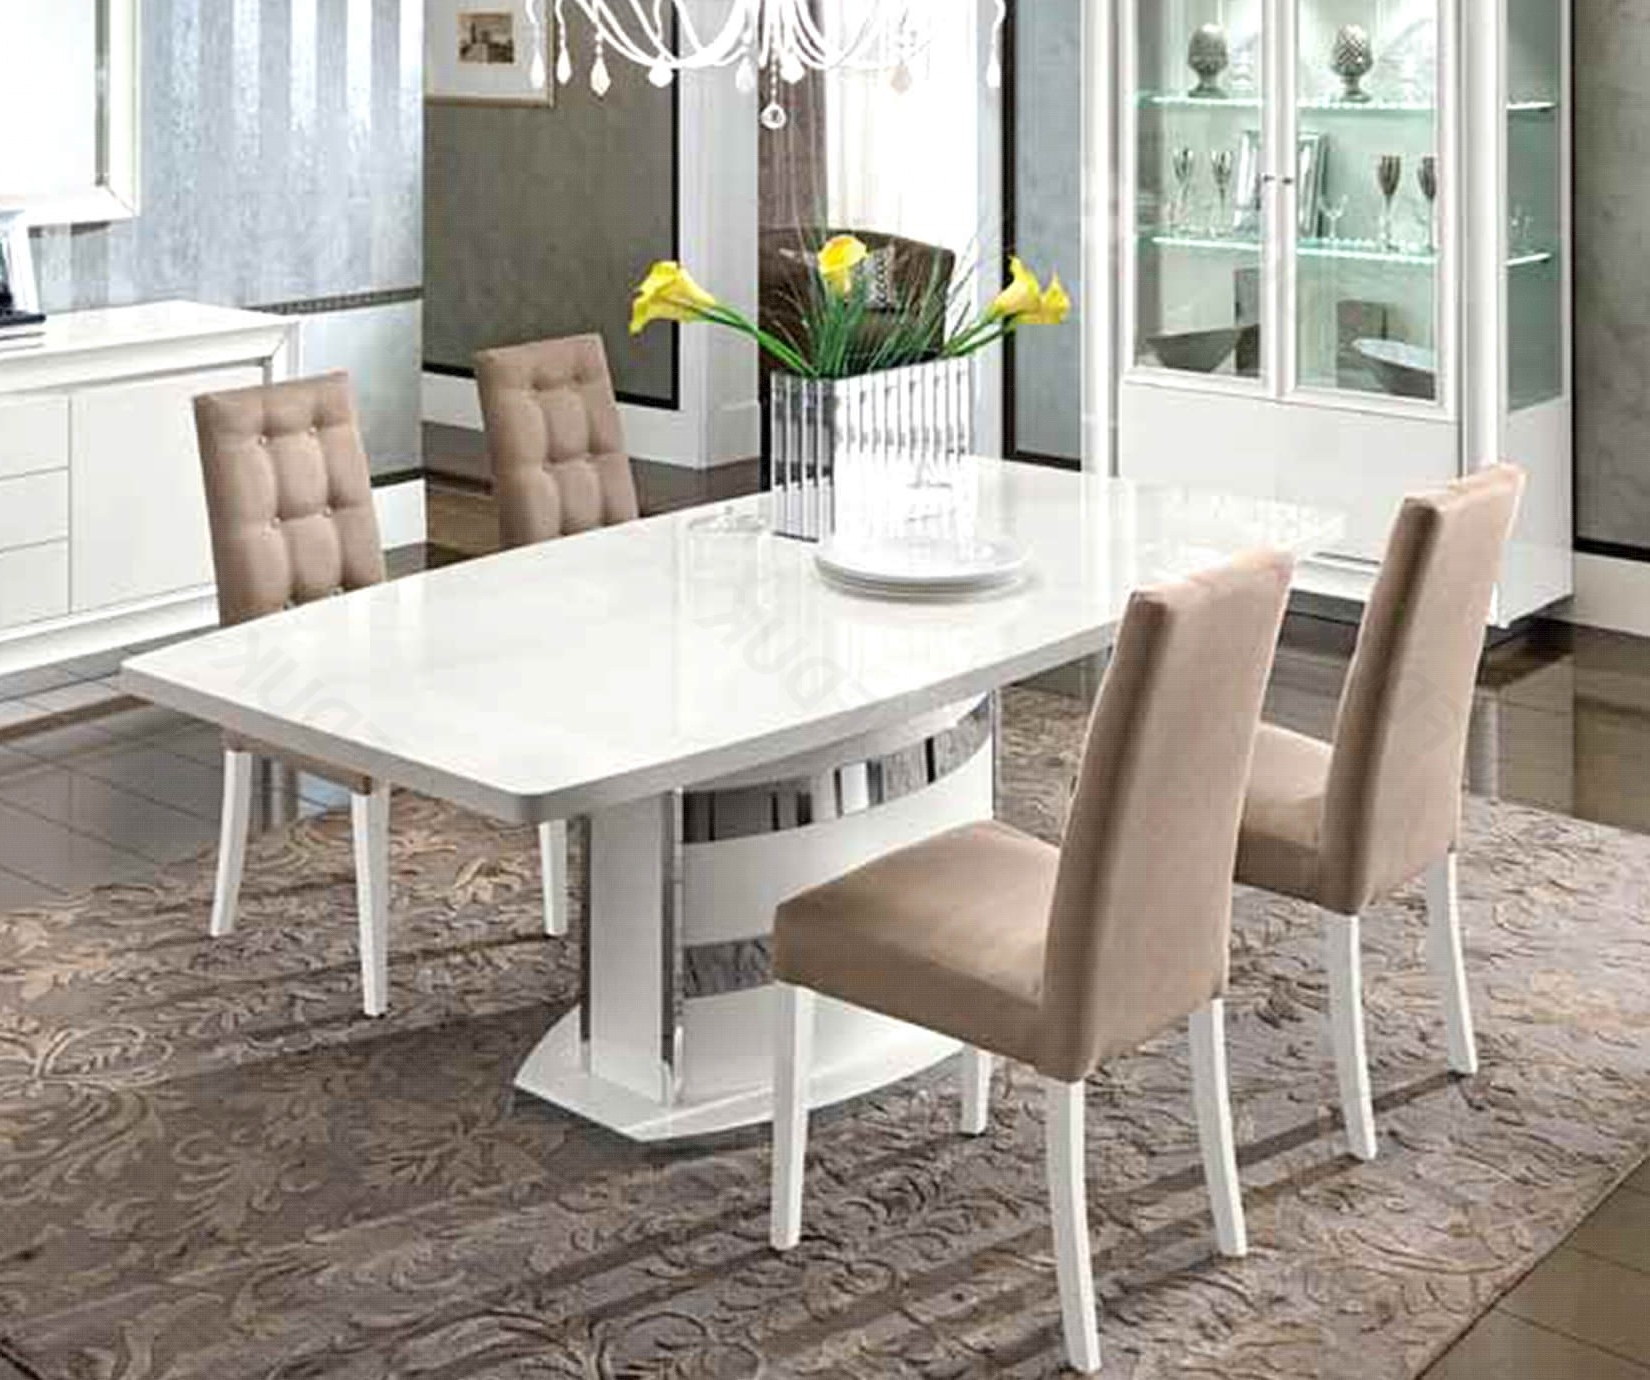 The 26 New White High Gloss Extending Dining Table – Welovedandelion Intended For Most Current Extending Gloss Dining Tables (View 10 of 25)